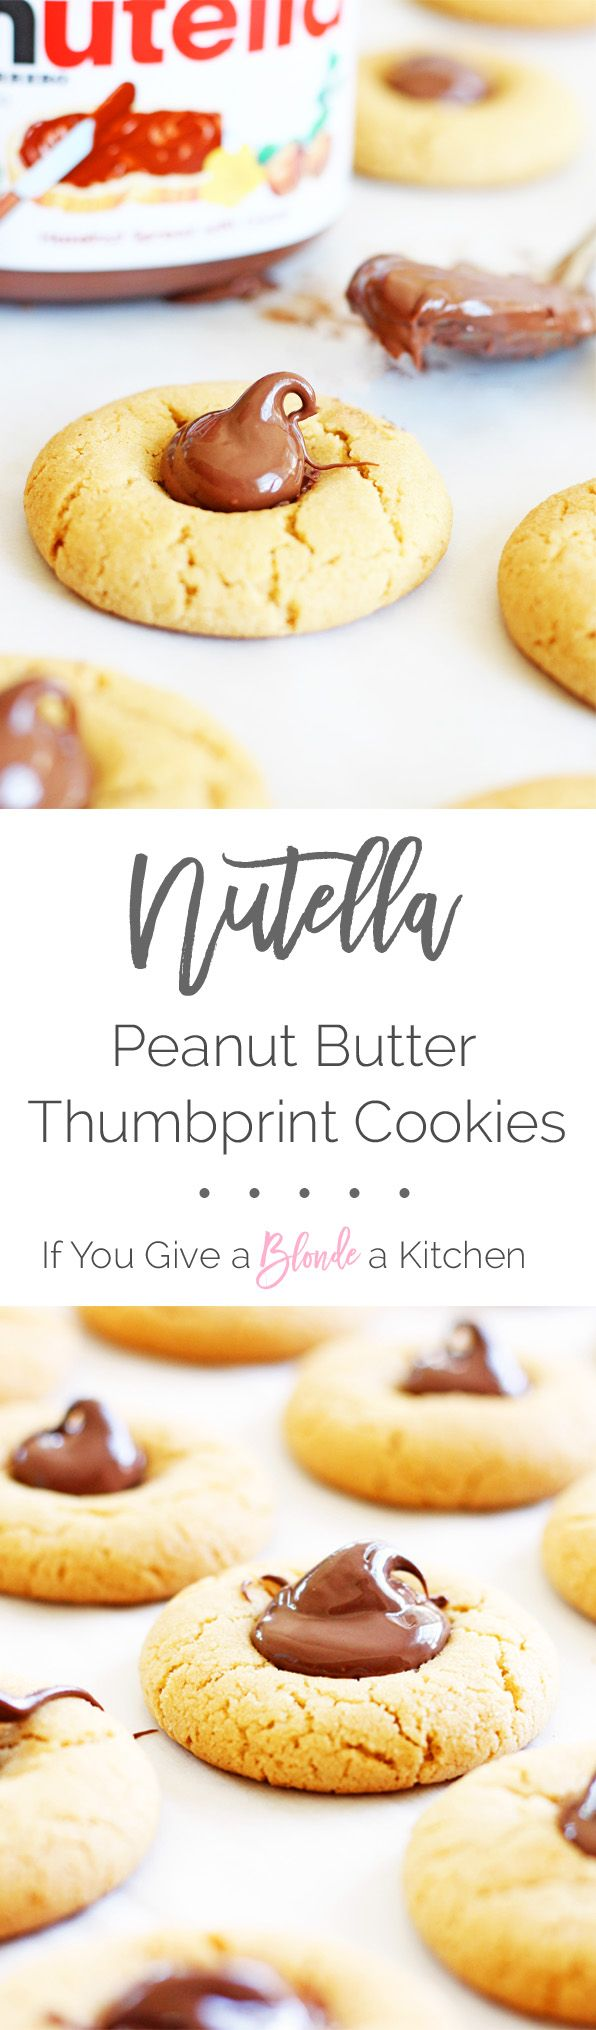 Nutella peanut butter thumbprint cookies are made using an easy peanut butter cookie recipe and topped with a dollop of Nutella.   www.ifyougiveablondeakitchen.com